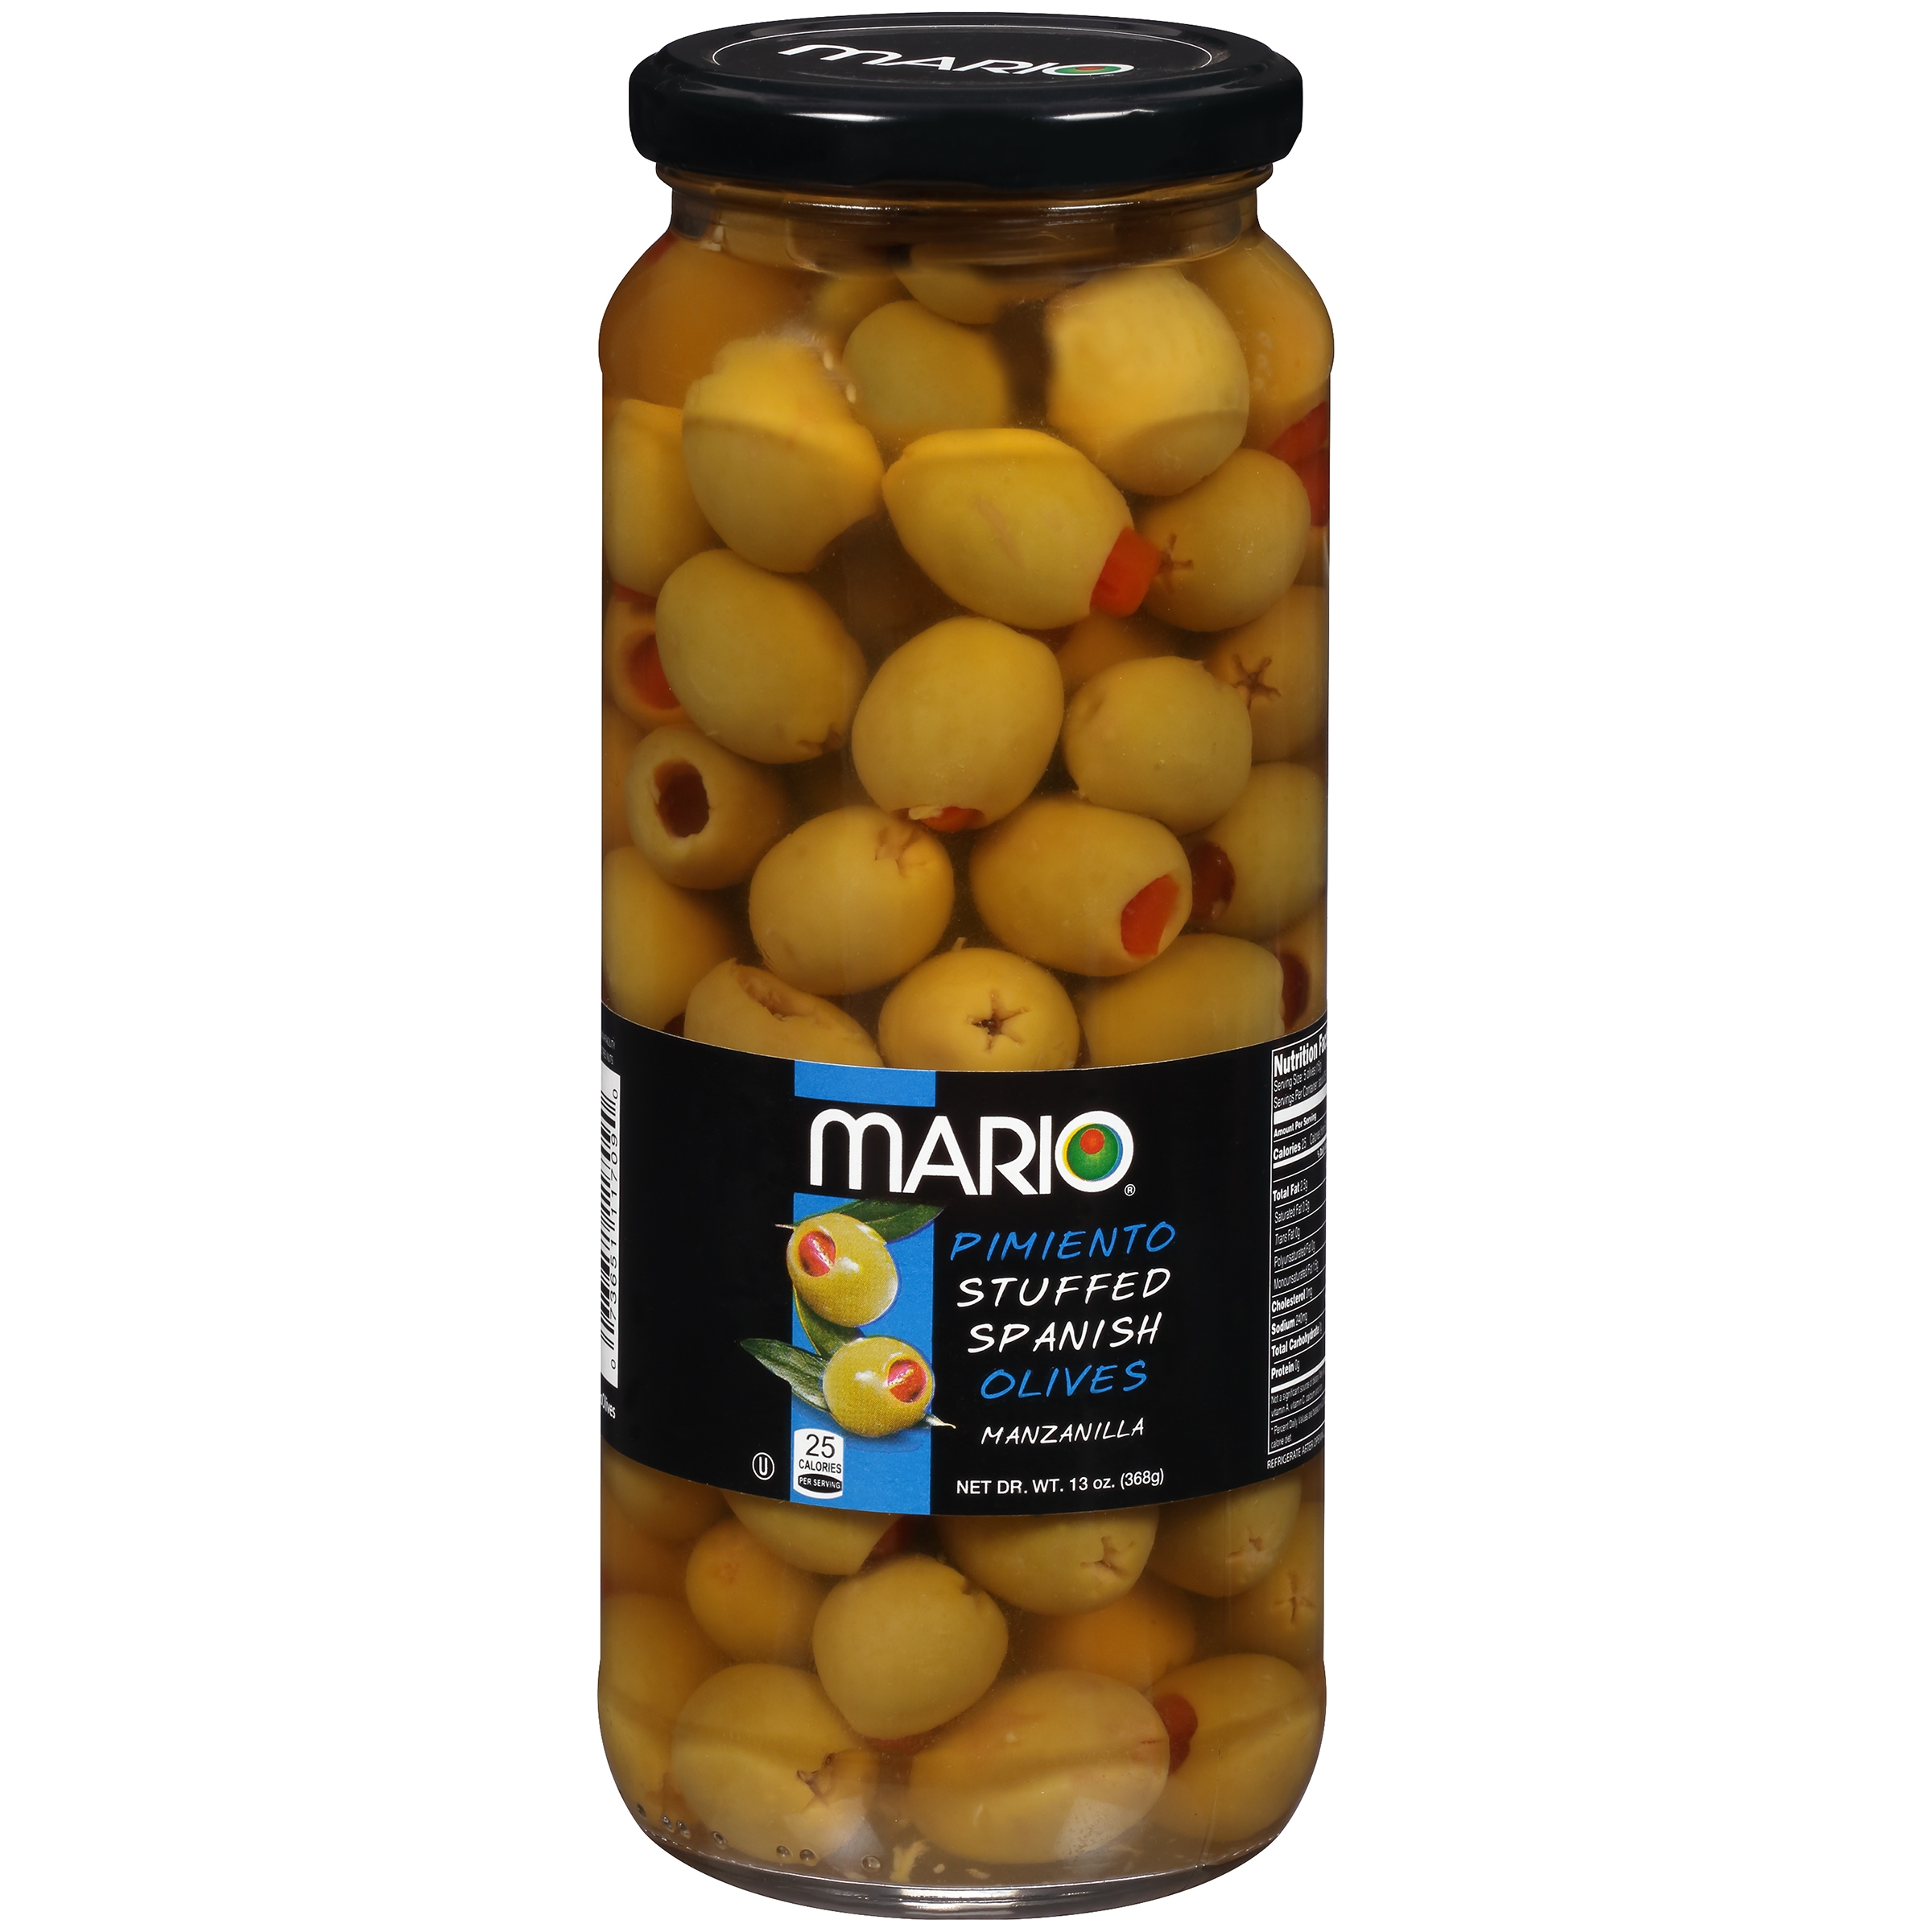 Mario® Pimiento Stuffed Spanish Manzanilla Olives 13 oz. Jar